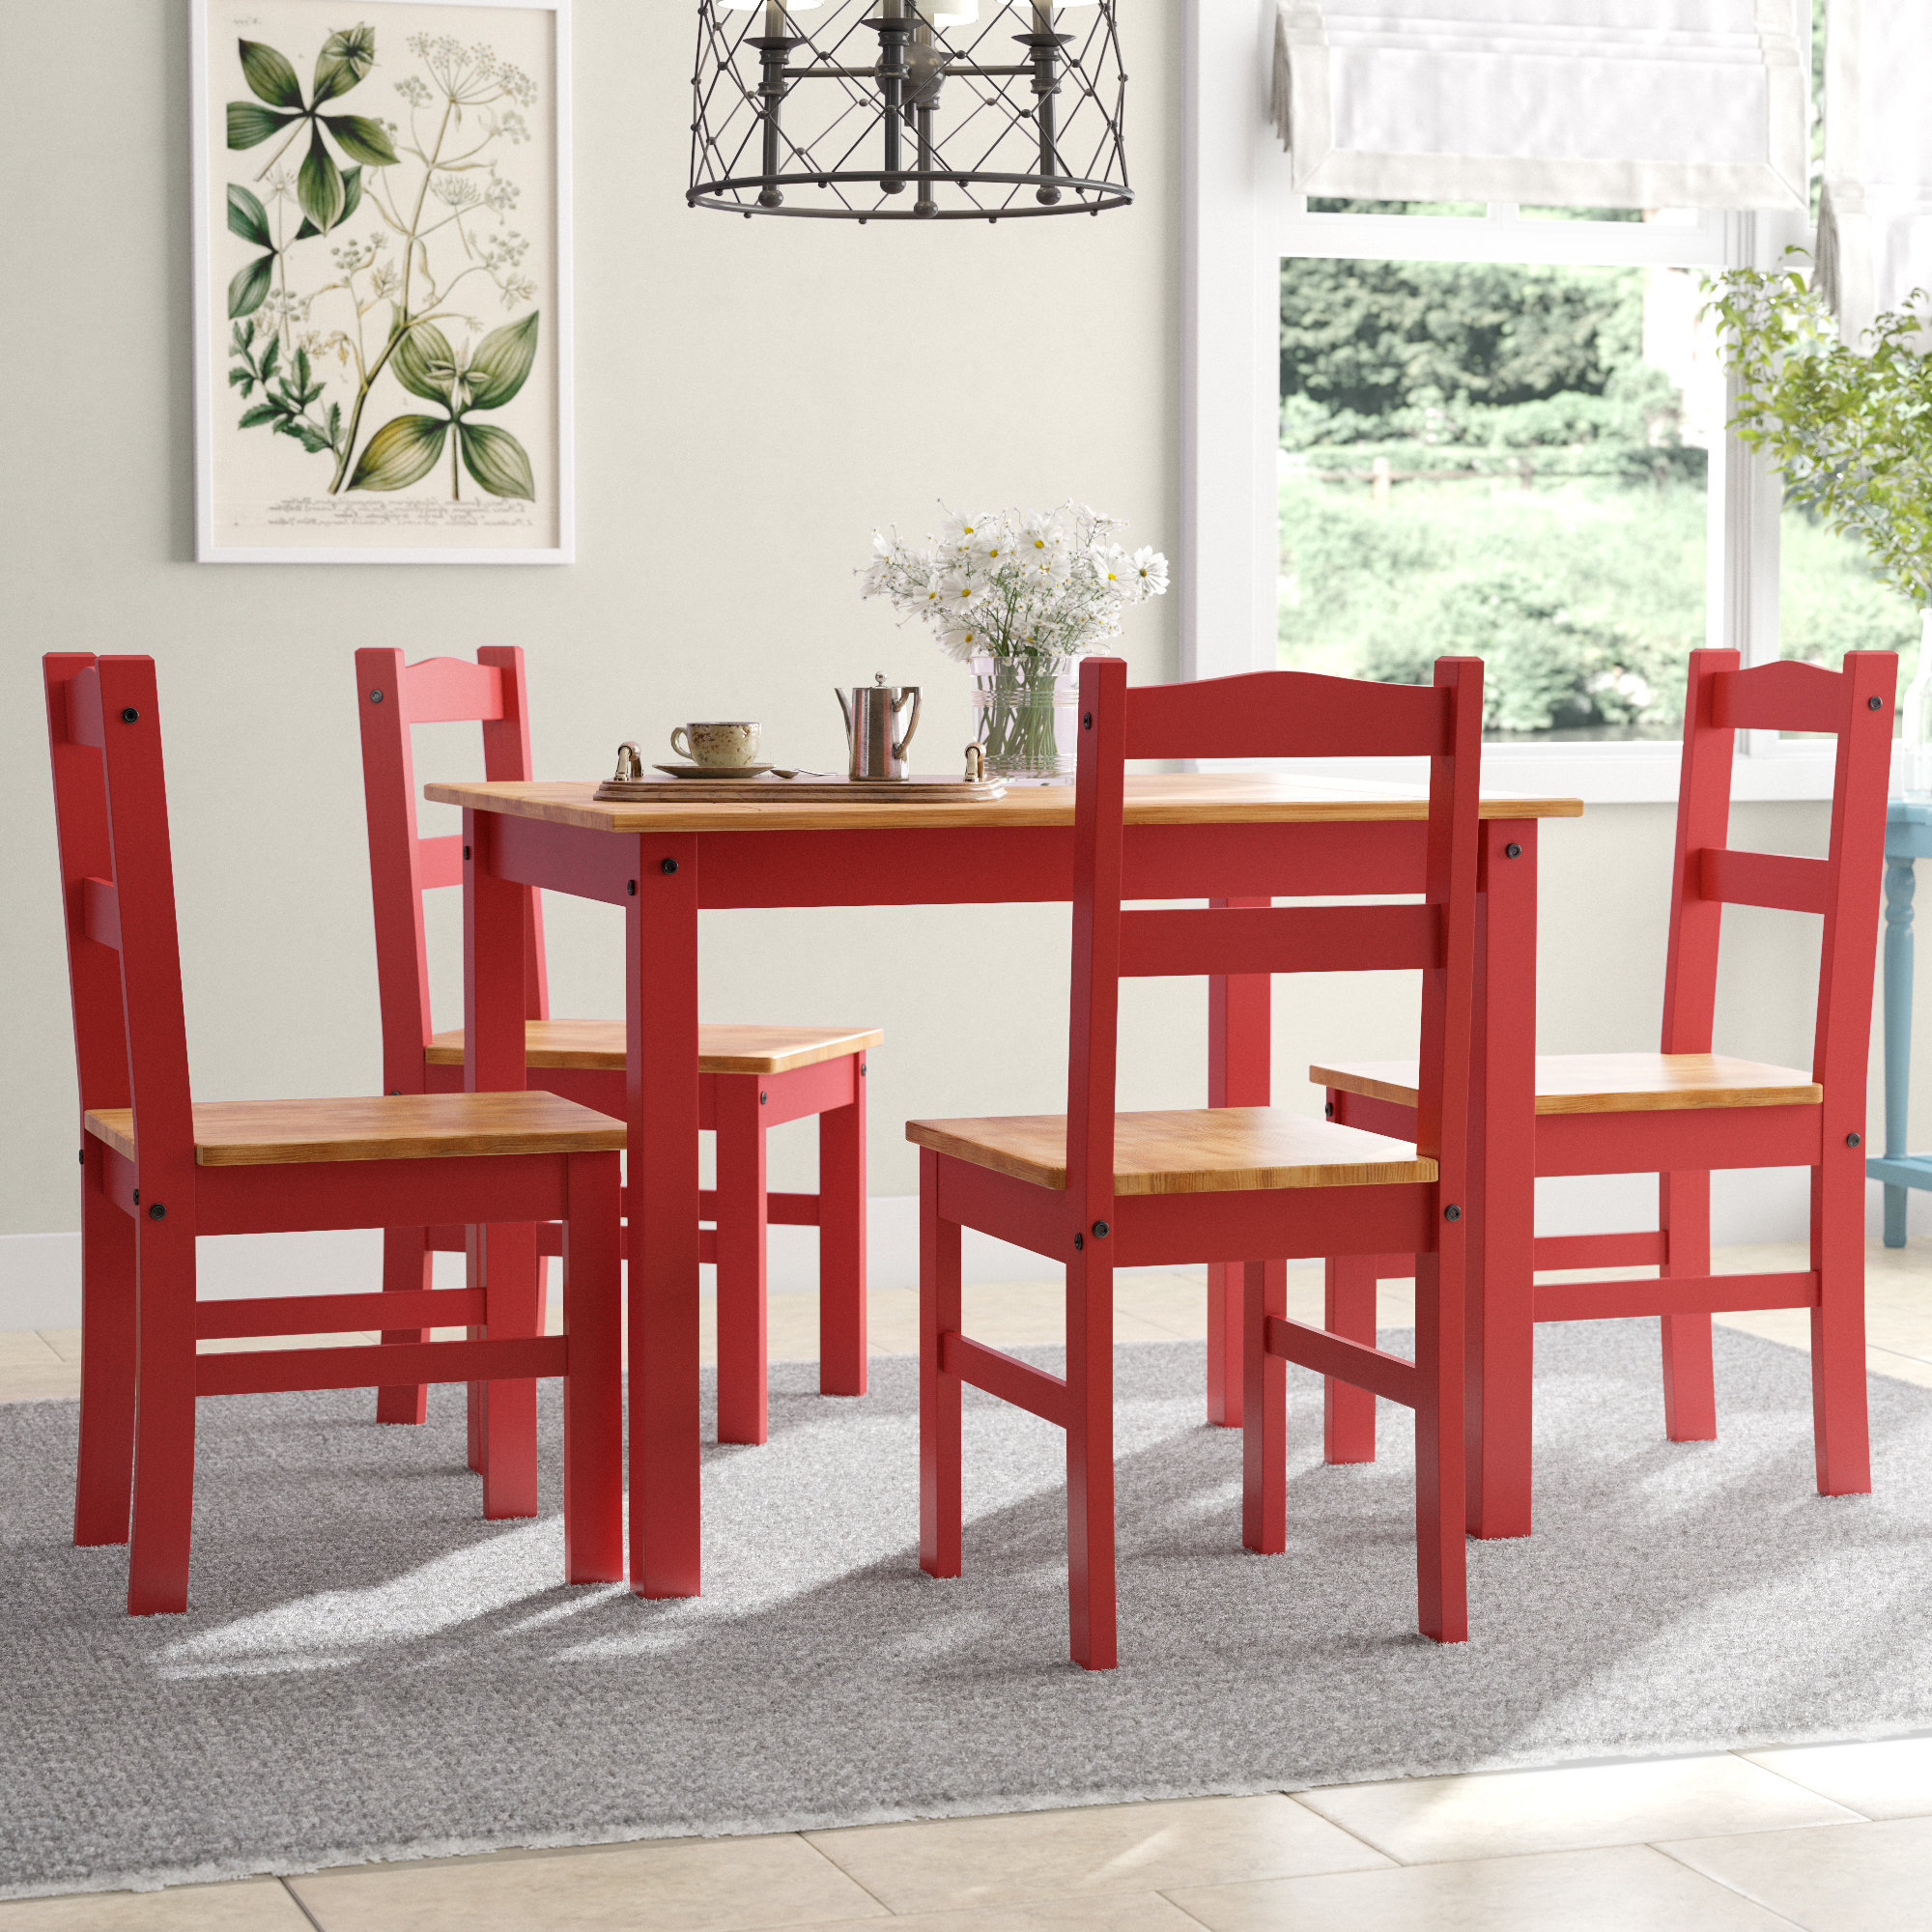 Rodgers 5 Piece Solid Wood Dining Set Inside 2018 Sundberg 5 Piece Solid Wood Dining Sets (View 8 of 20)